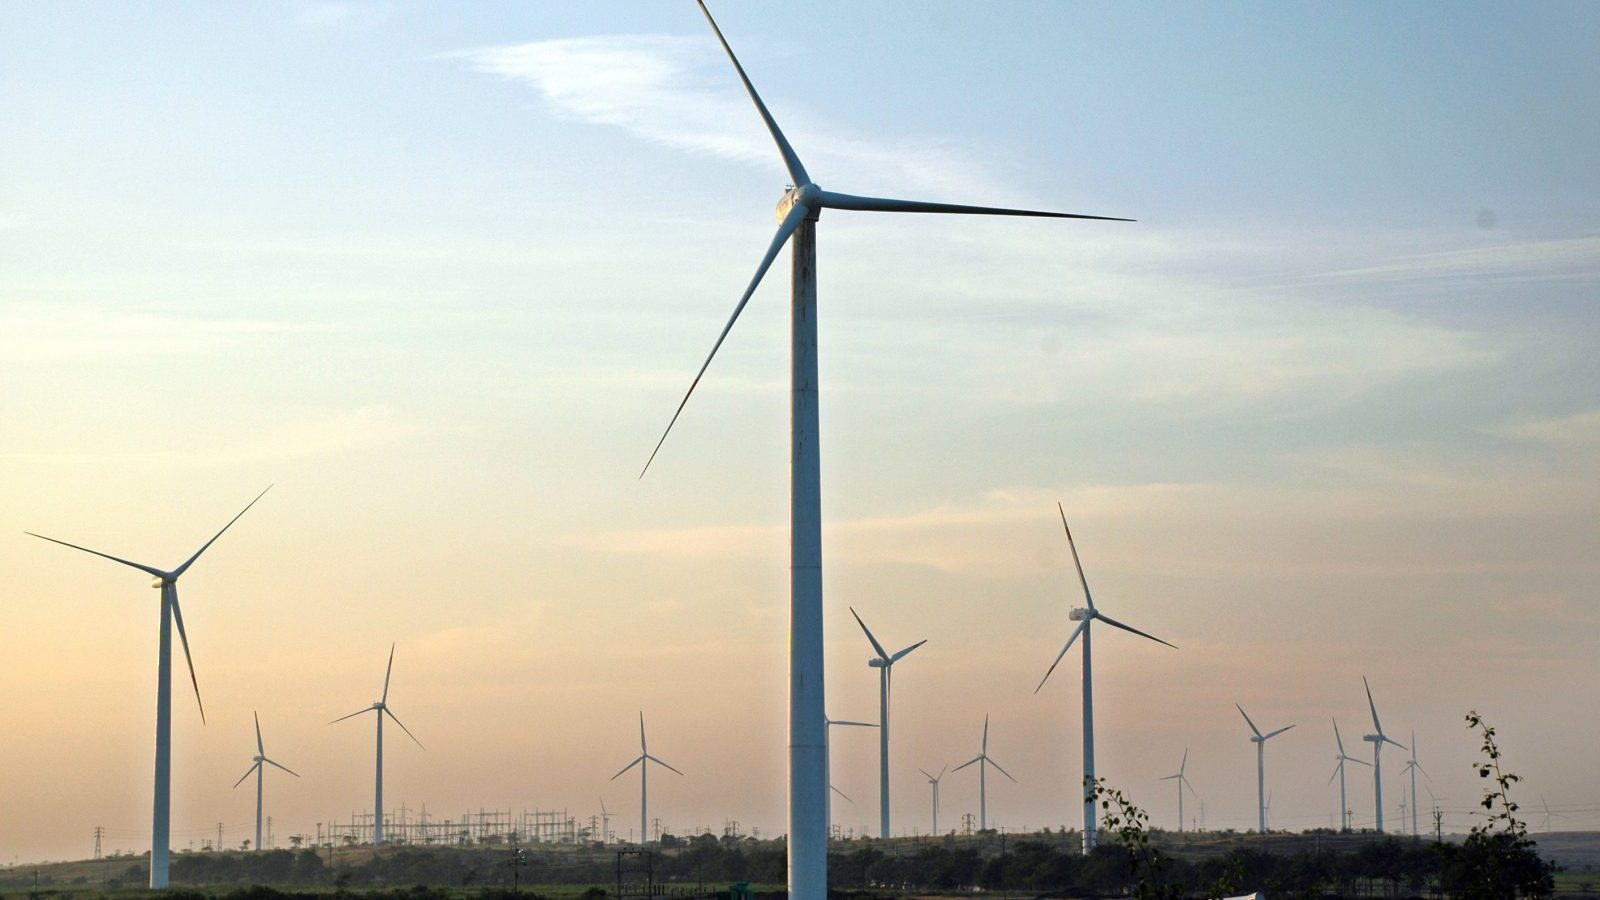 Wind turbines turn in the breeze at Nagaj village in Sangli district in the western Indian state of Maharashtra December 5, 2009. REUTERS/Uday Deolekar (INDIA - Tags: ENERGY) - GM1E5CE16EB01